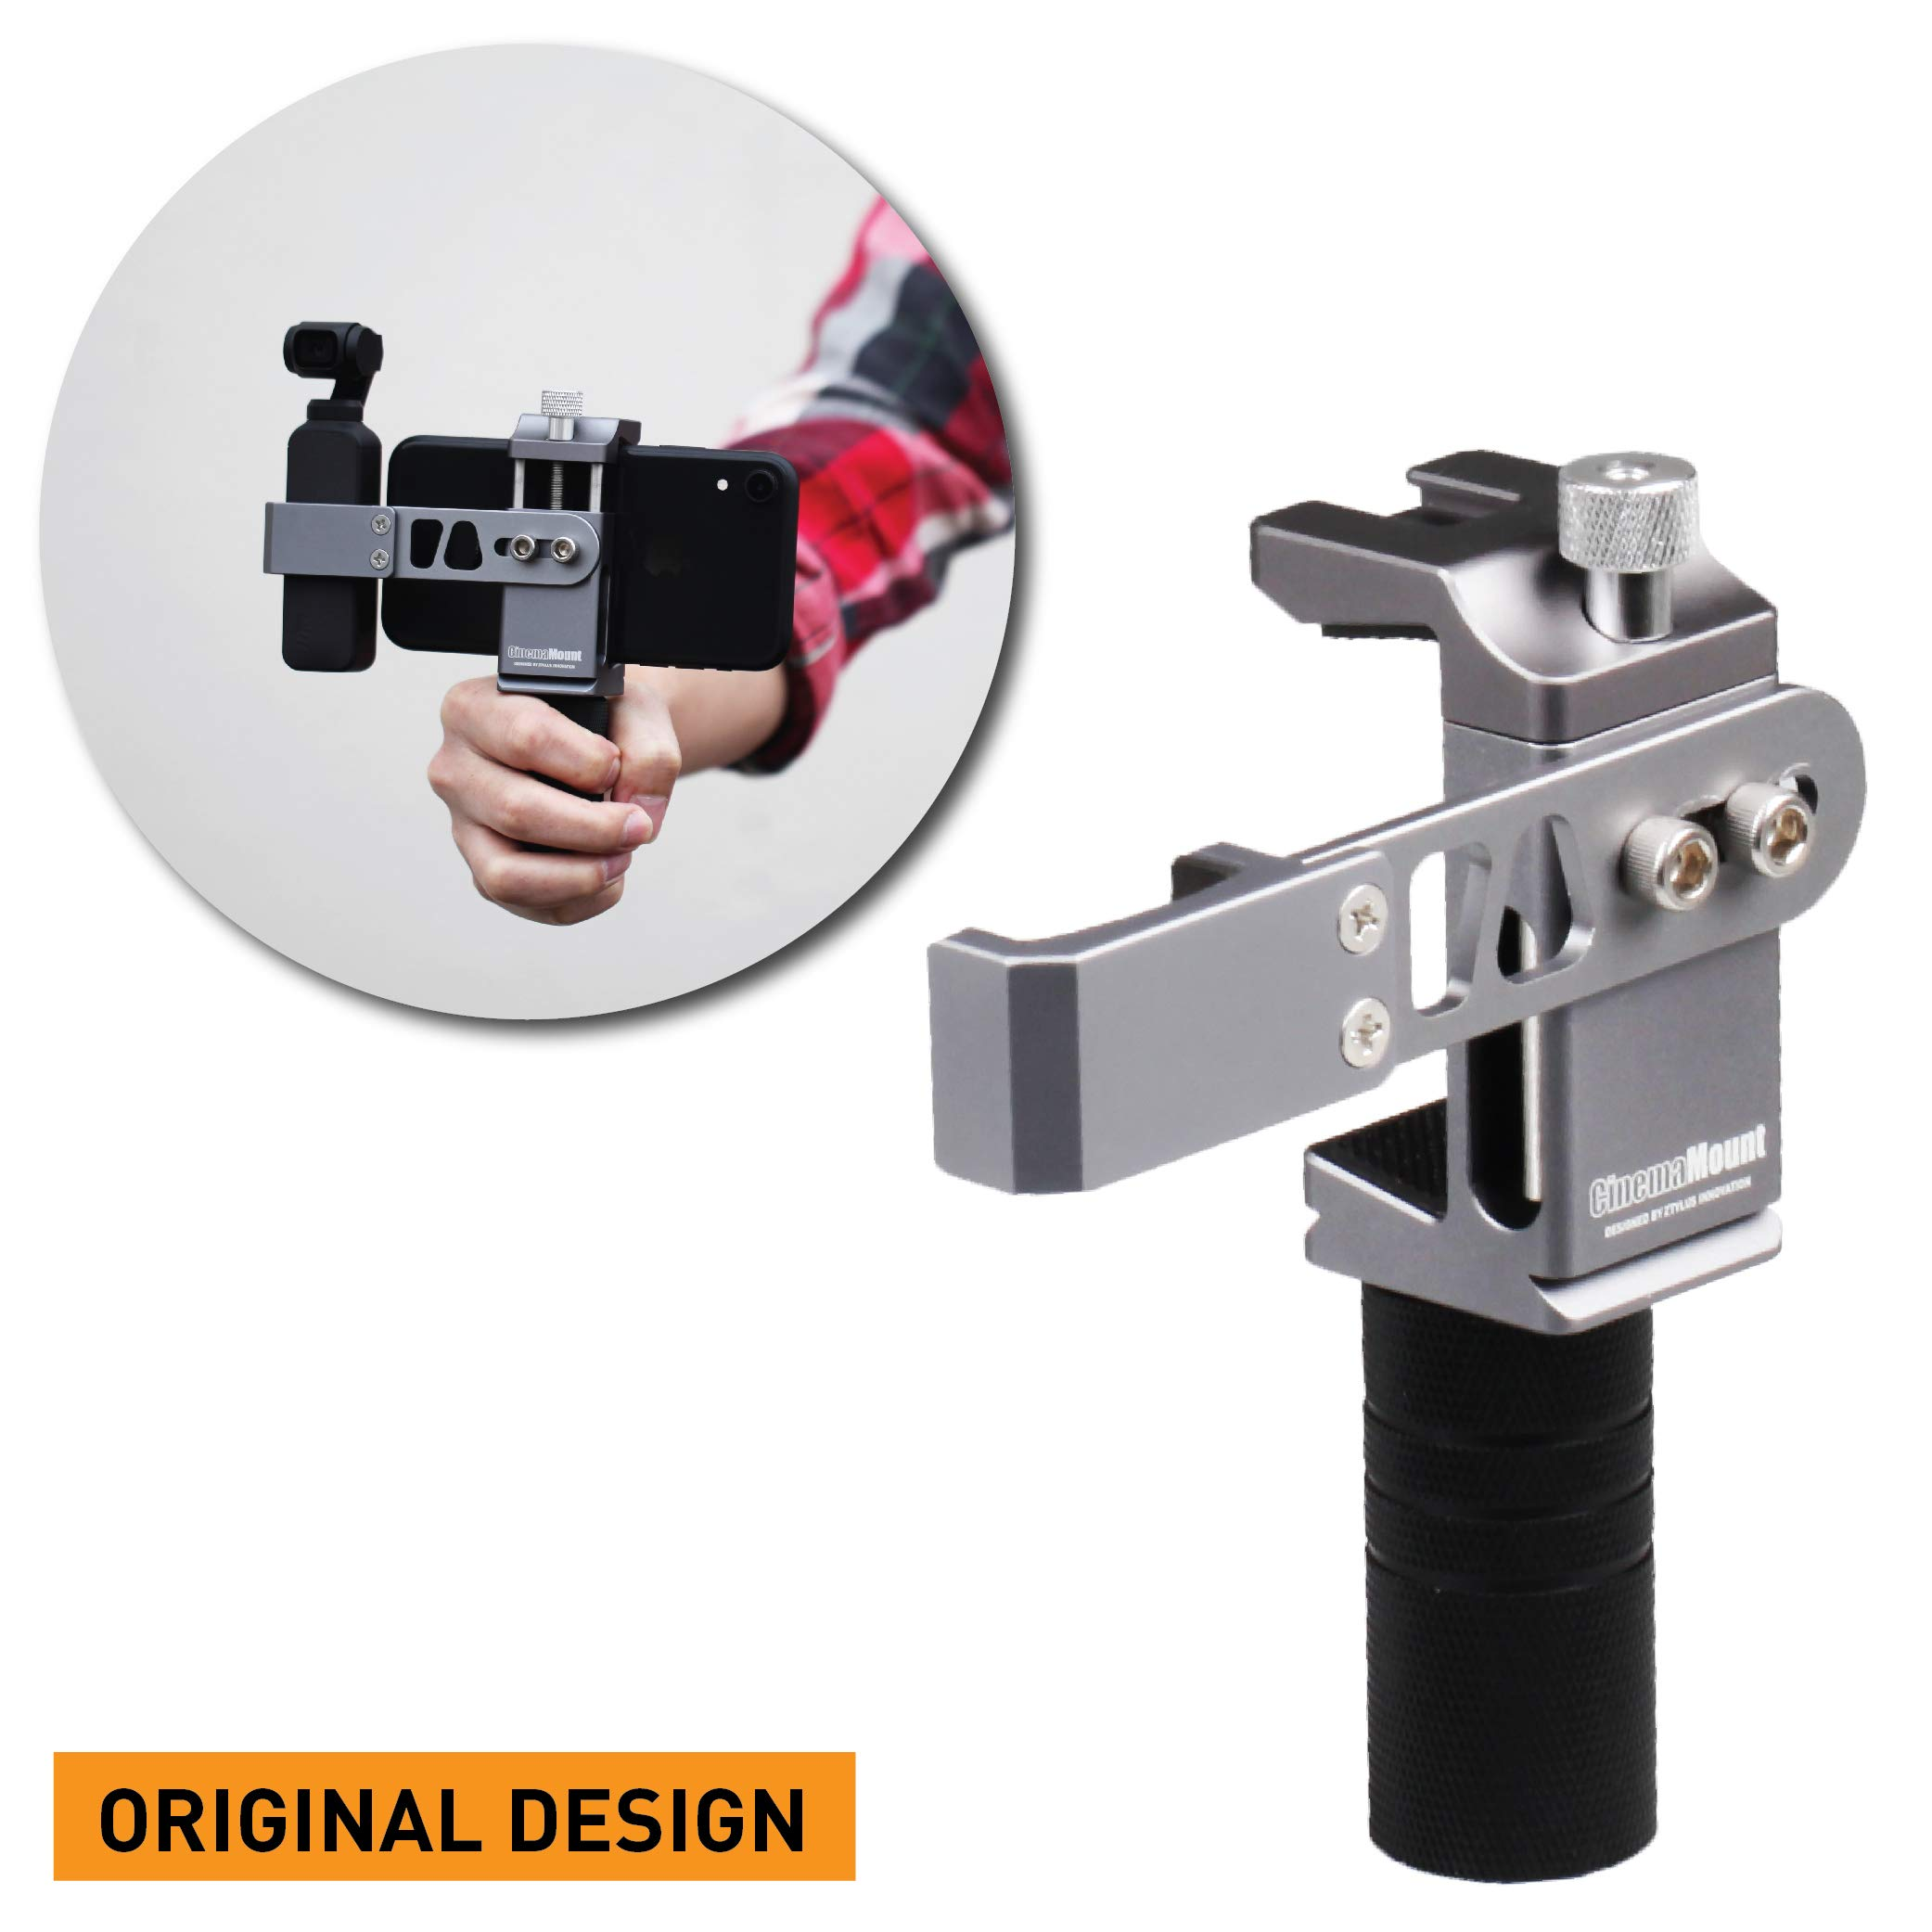 Cinema Mount Rig for DJI Osmo Pocket: Smartphone Rig, Aluminum Alloy Grip Handle, Osmo Pocket Clip, Cell Phone Tripod Adapter, Standard Cold Shoe Mount, 1/4''-20 Tripod Thread, Fit Arca Swiss (Updated)